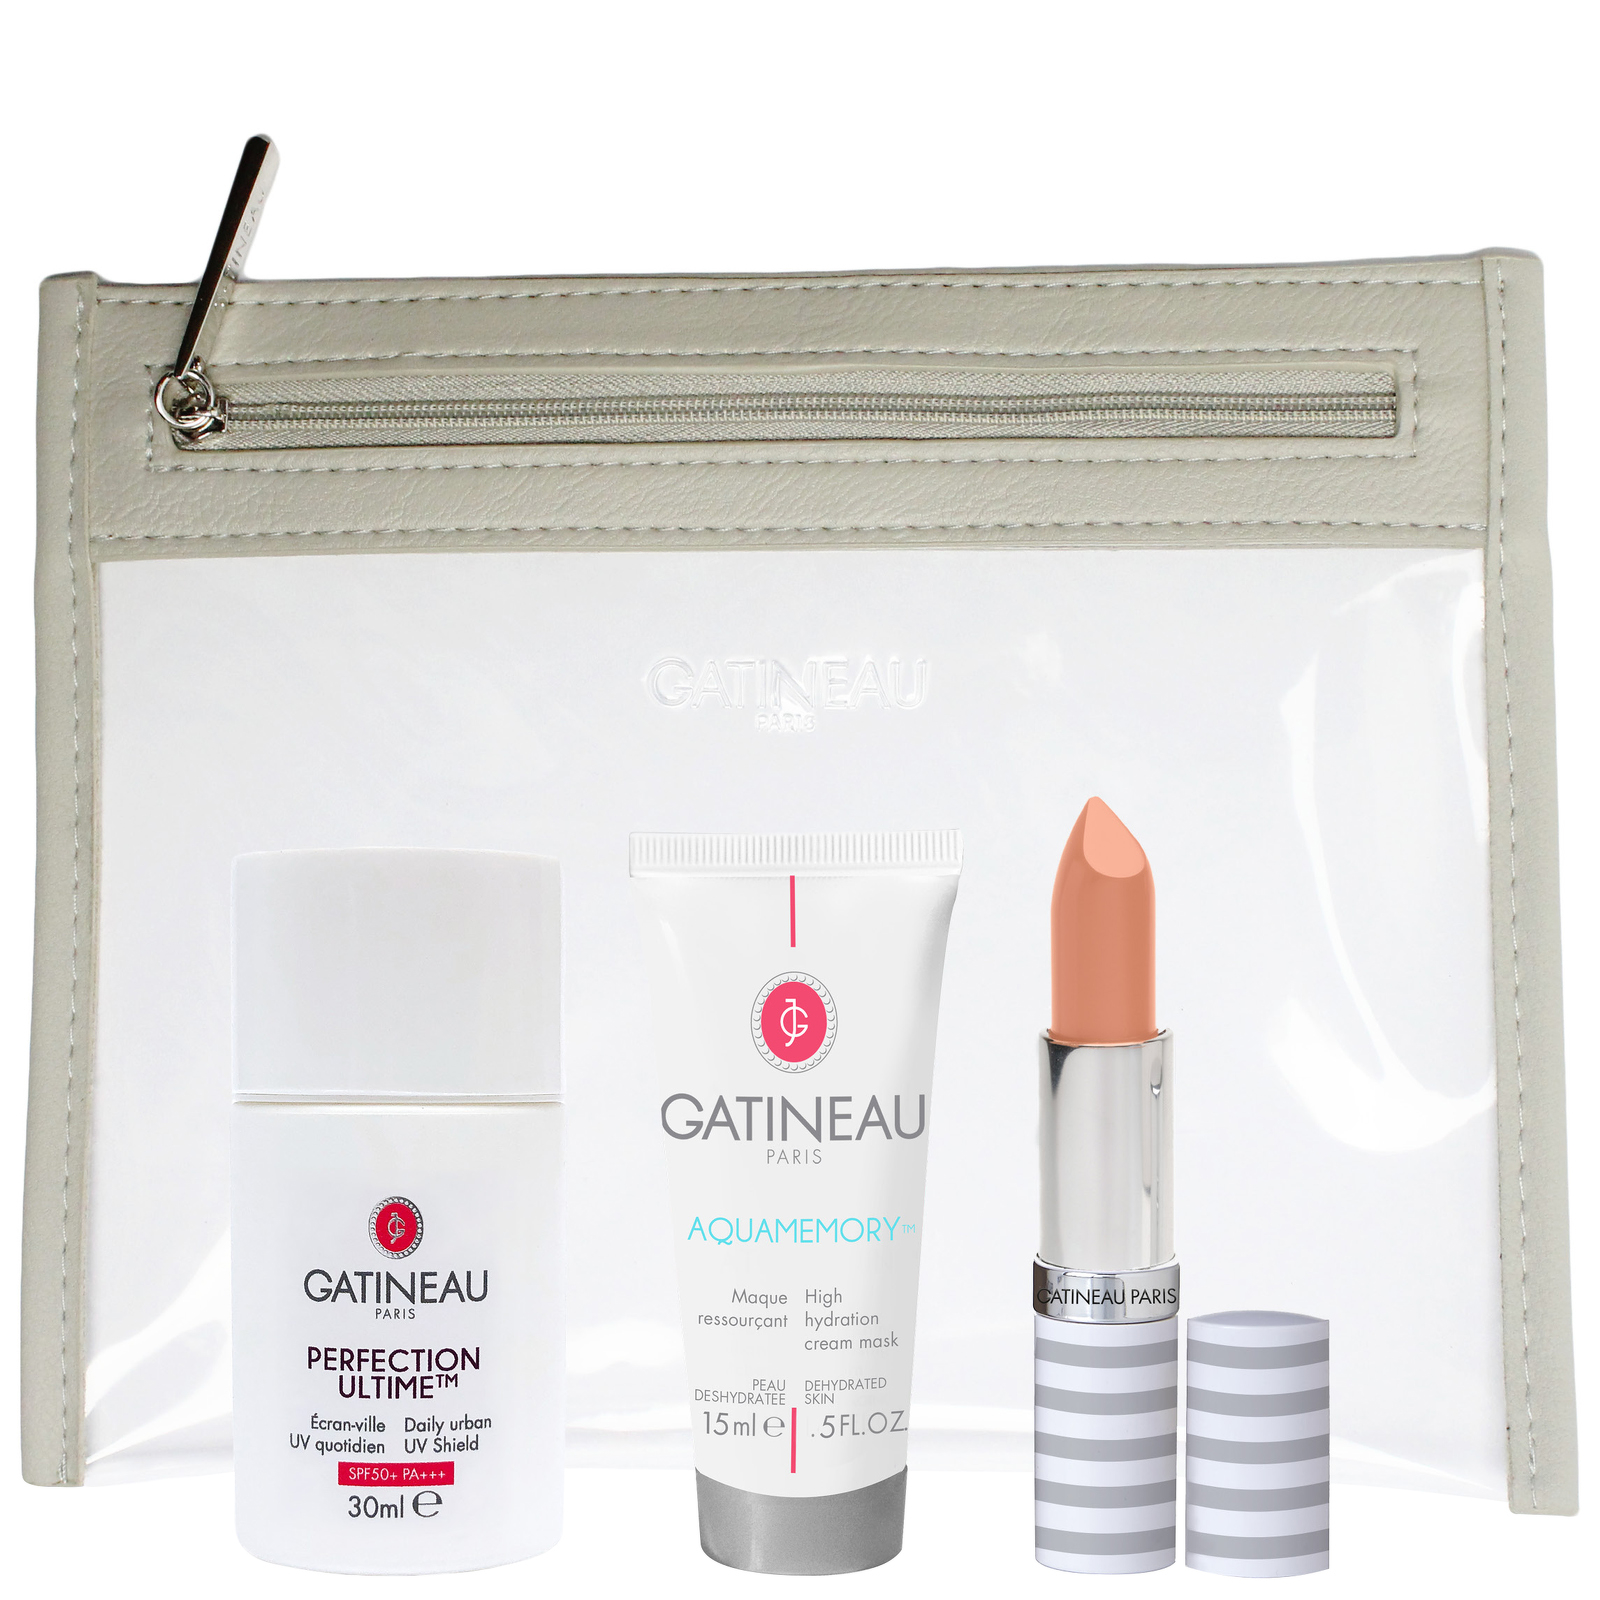 Gatineau Gifts & Sets SPF Daily Urban Protection Collection (Worth £75.00)